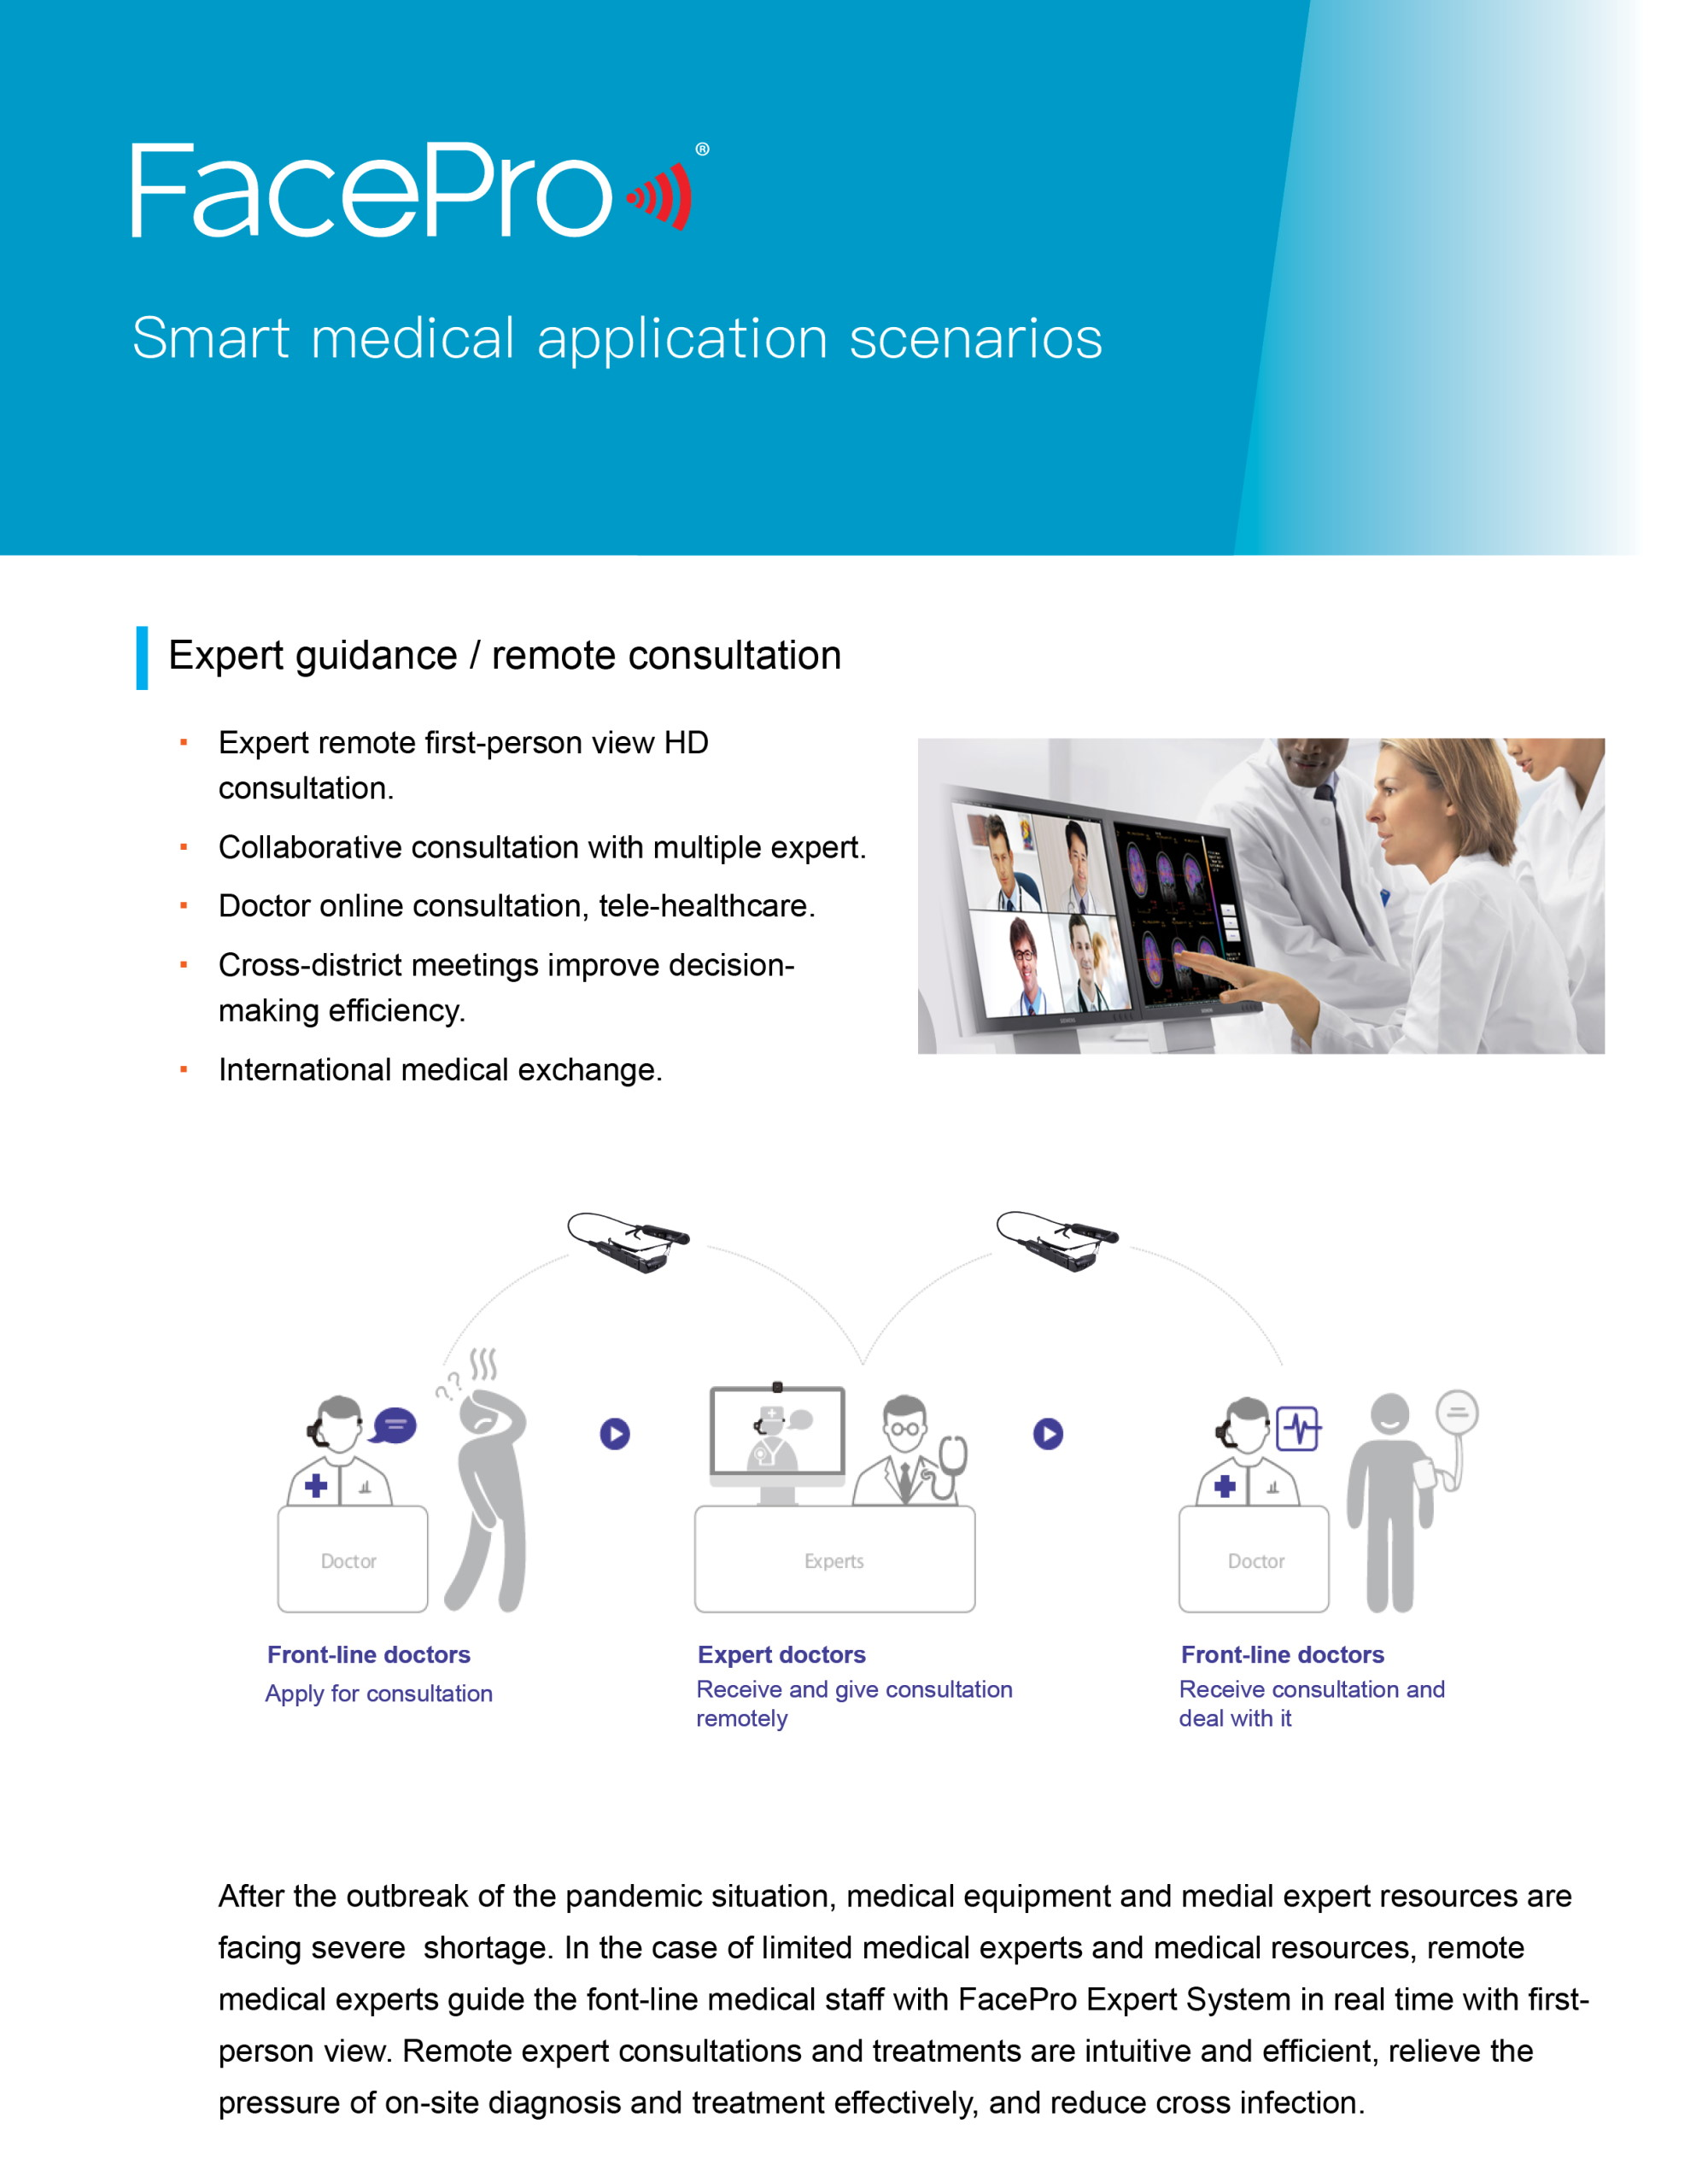 FacePro Xpert System Telemedicine Solution